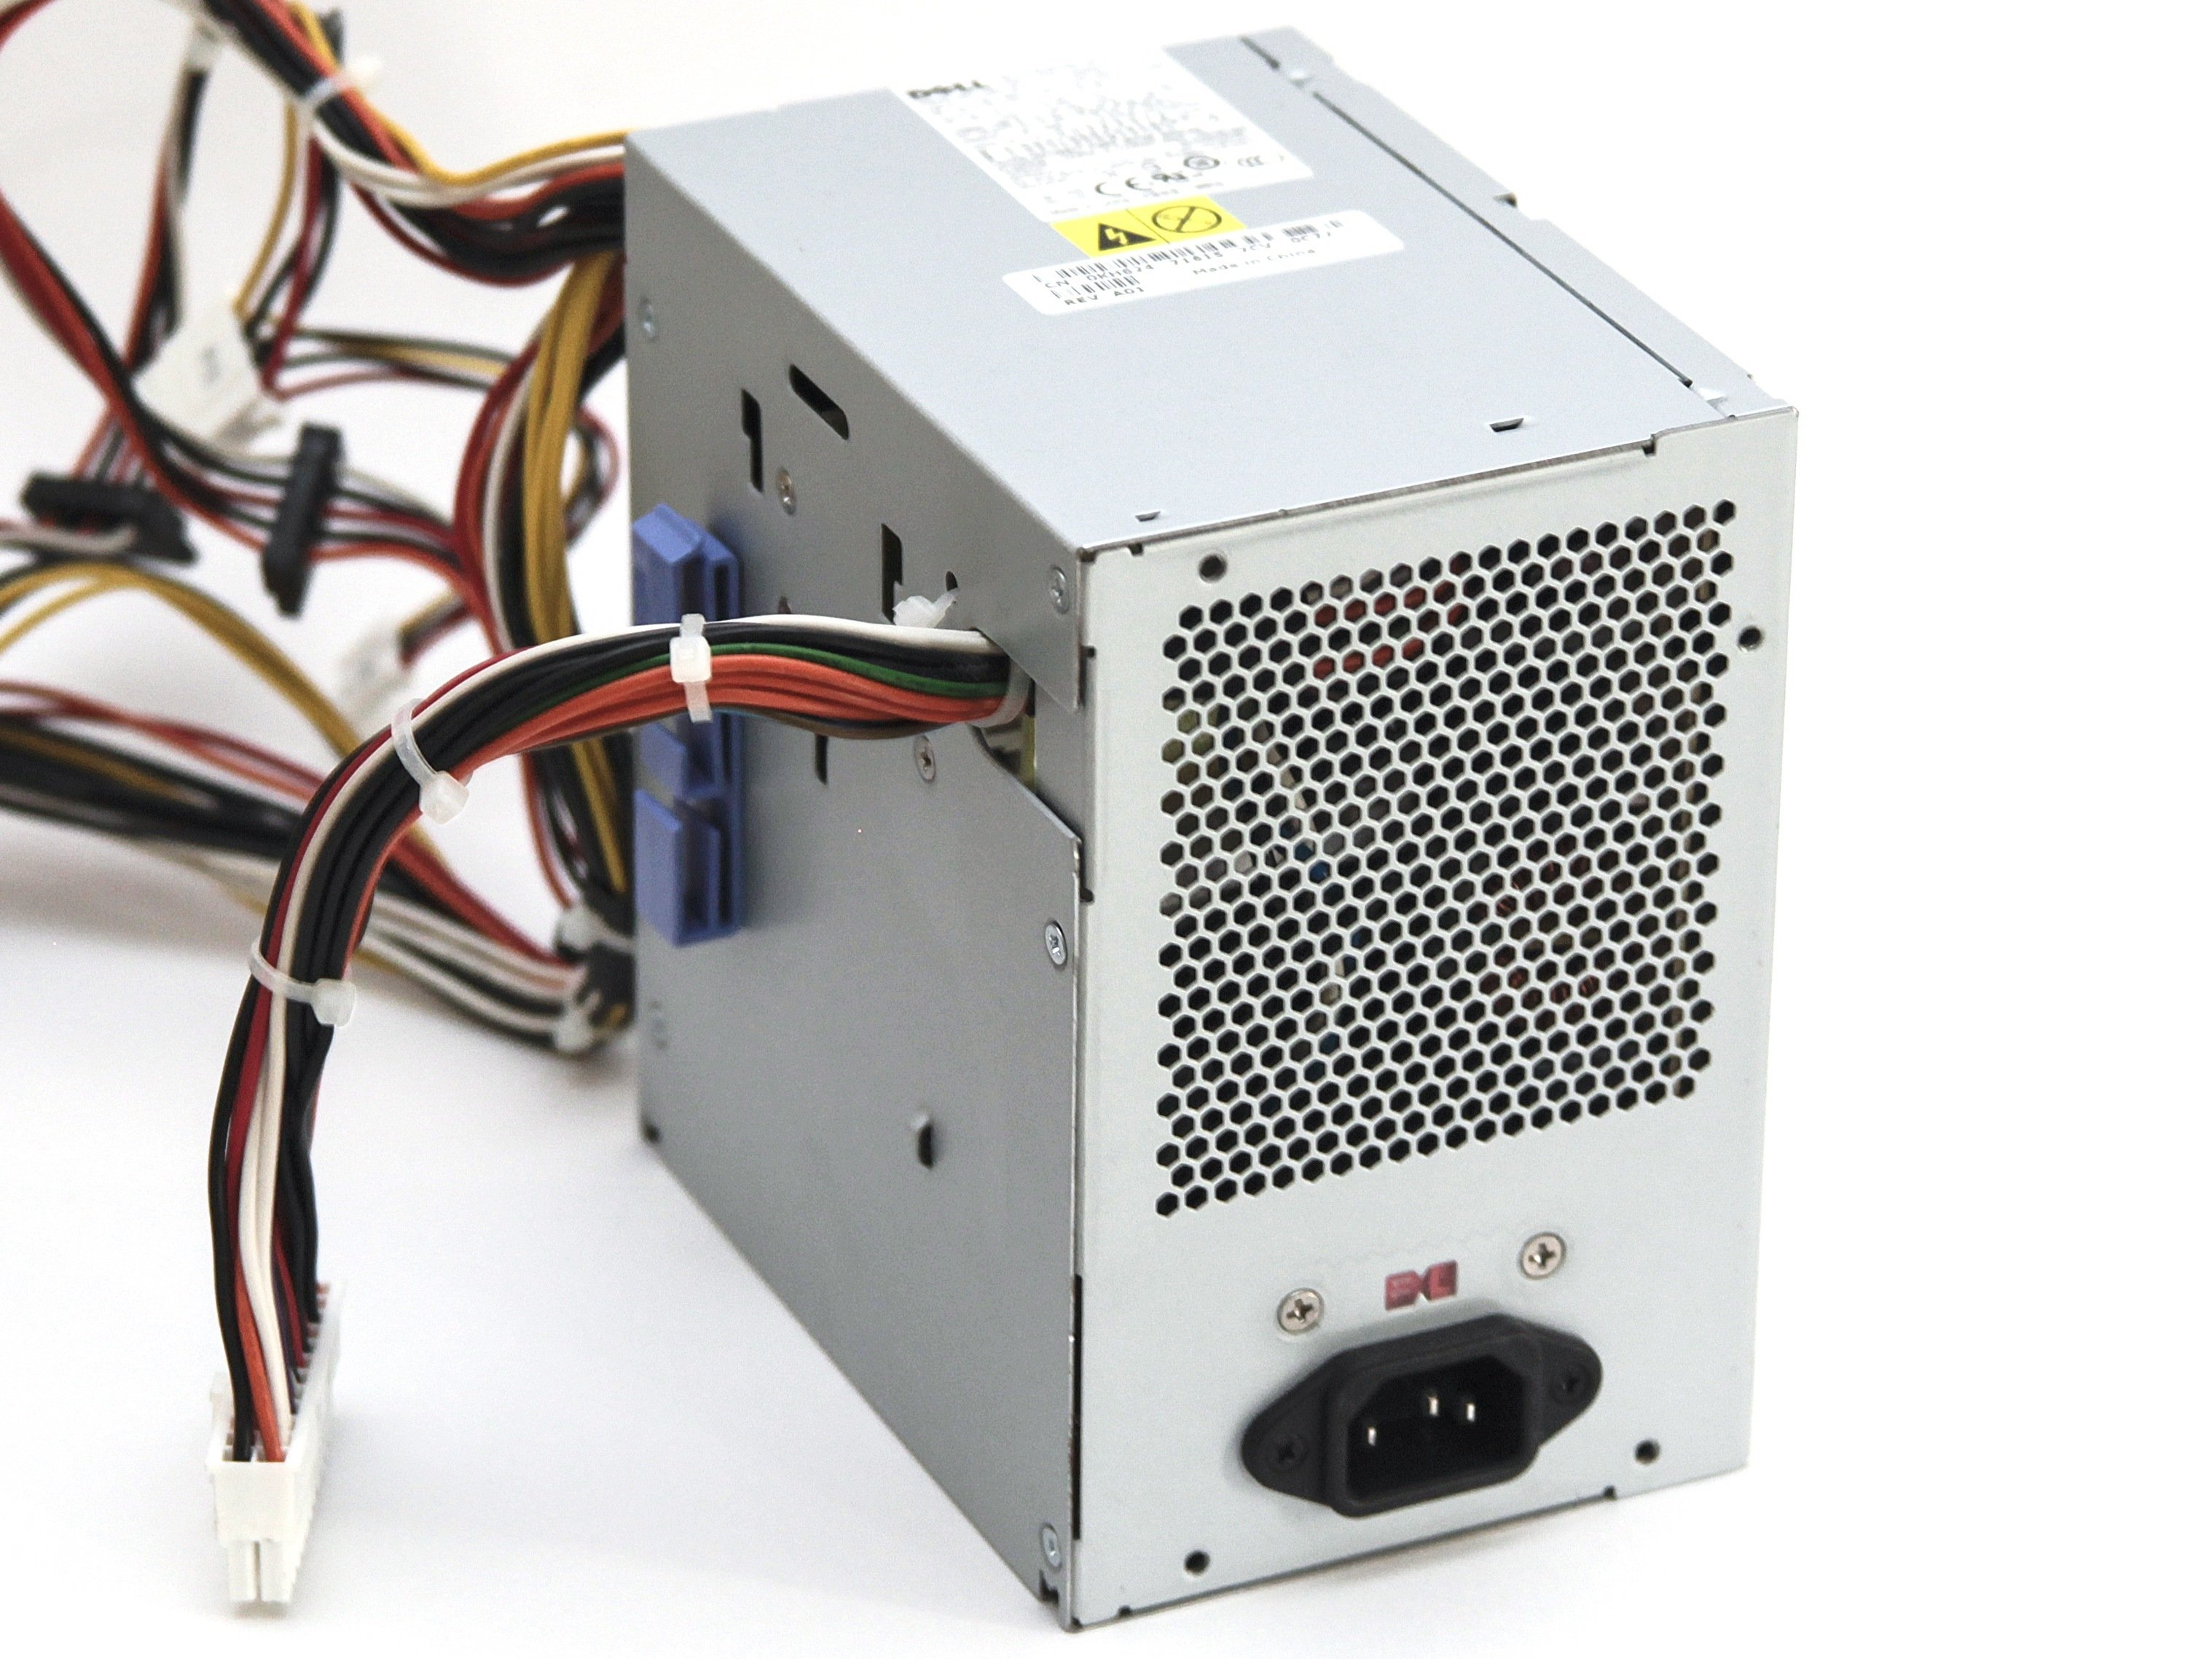 Dell Precision T3400 Power Supply Replacement - iFixit Repair Guide